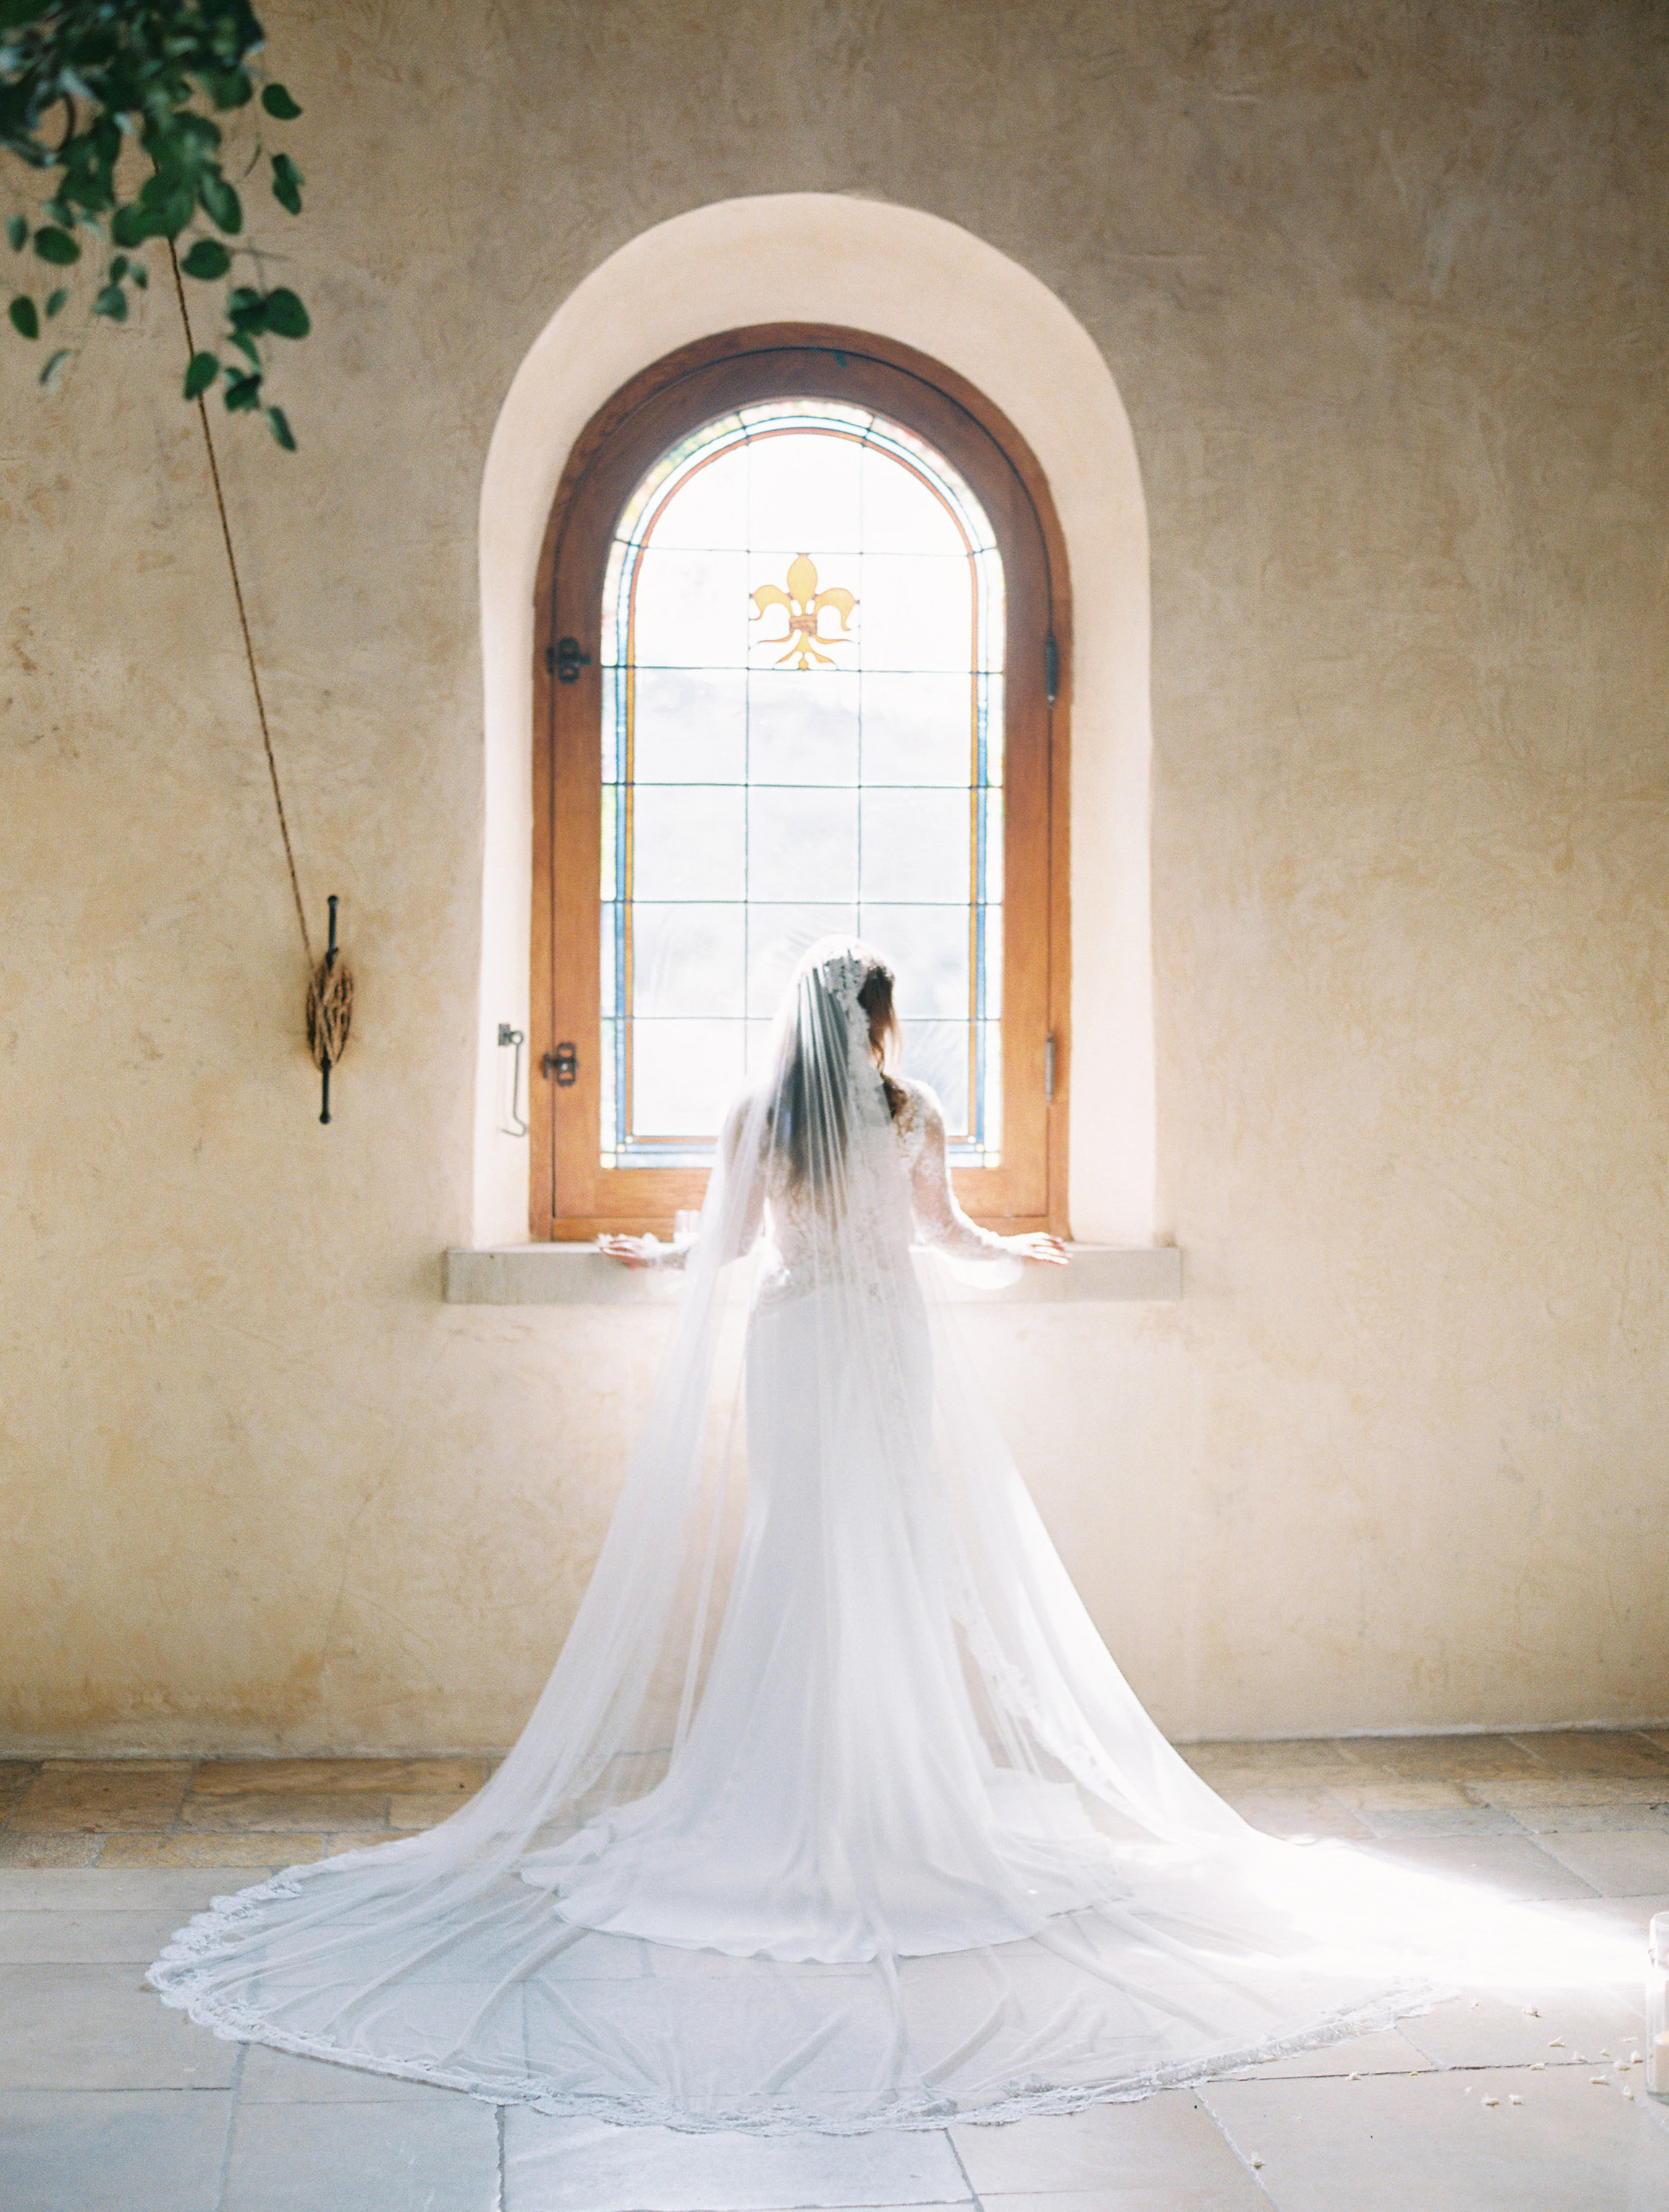 glamorous wedding ideas bride dramatic veil